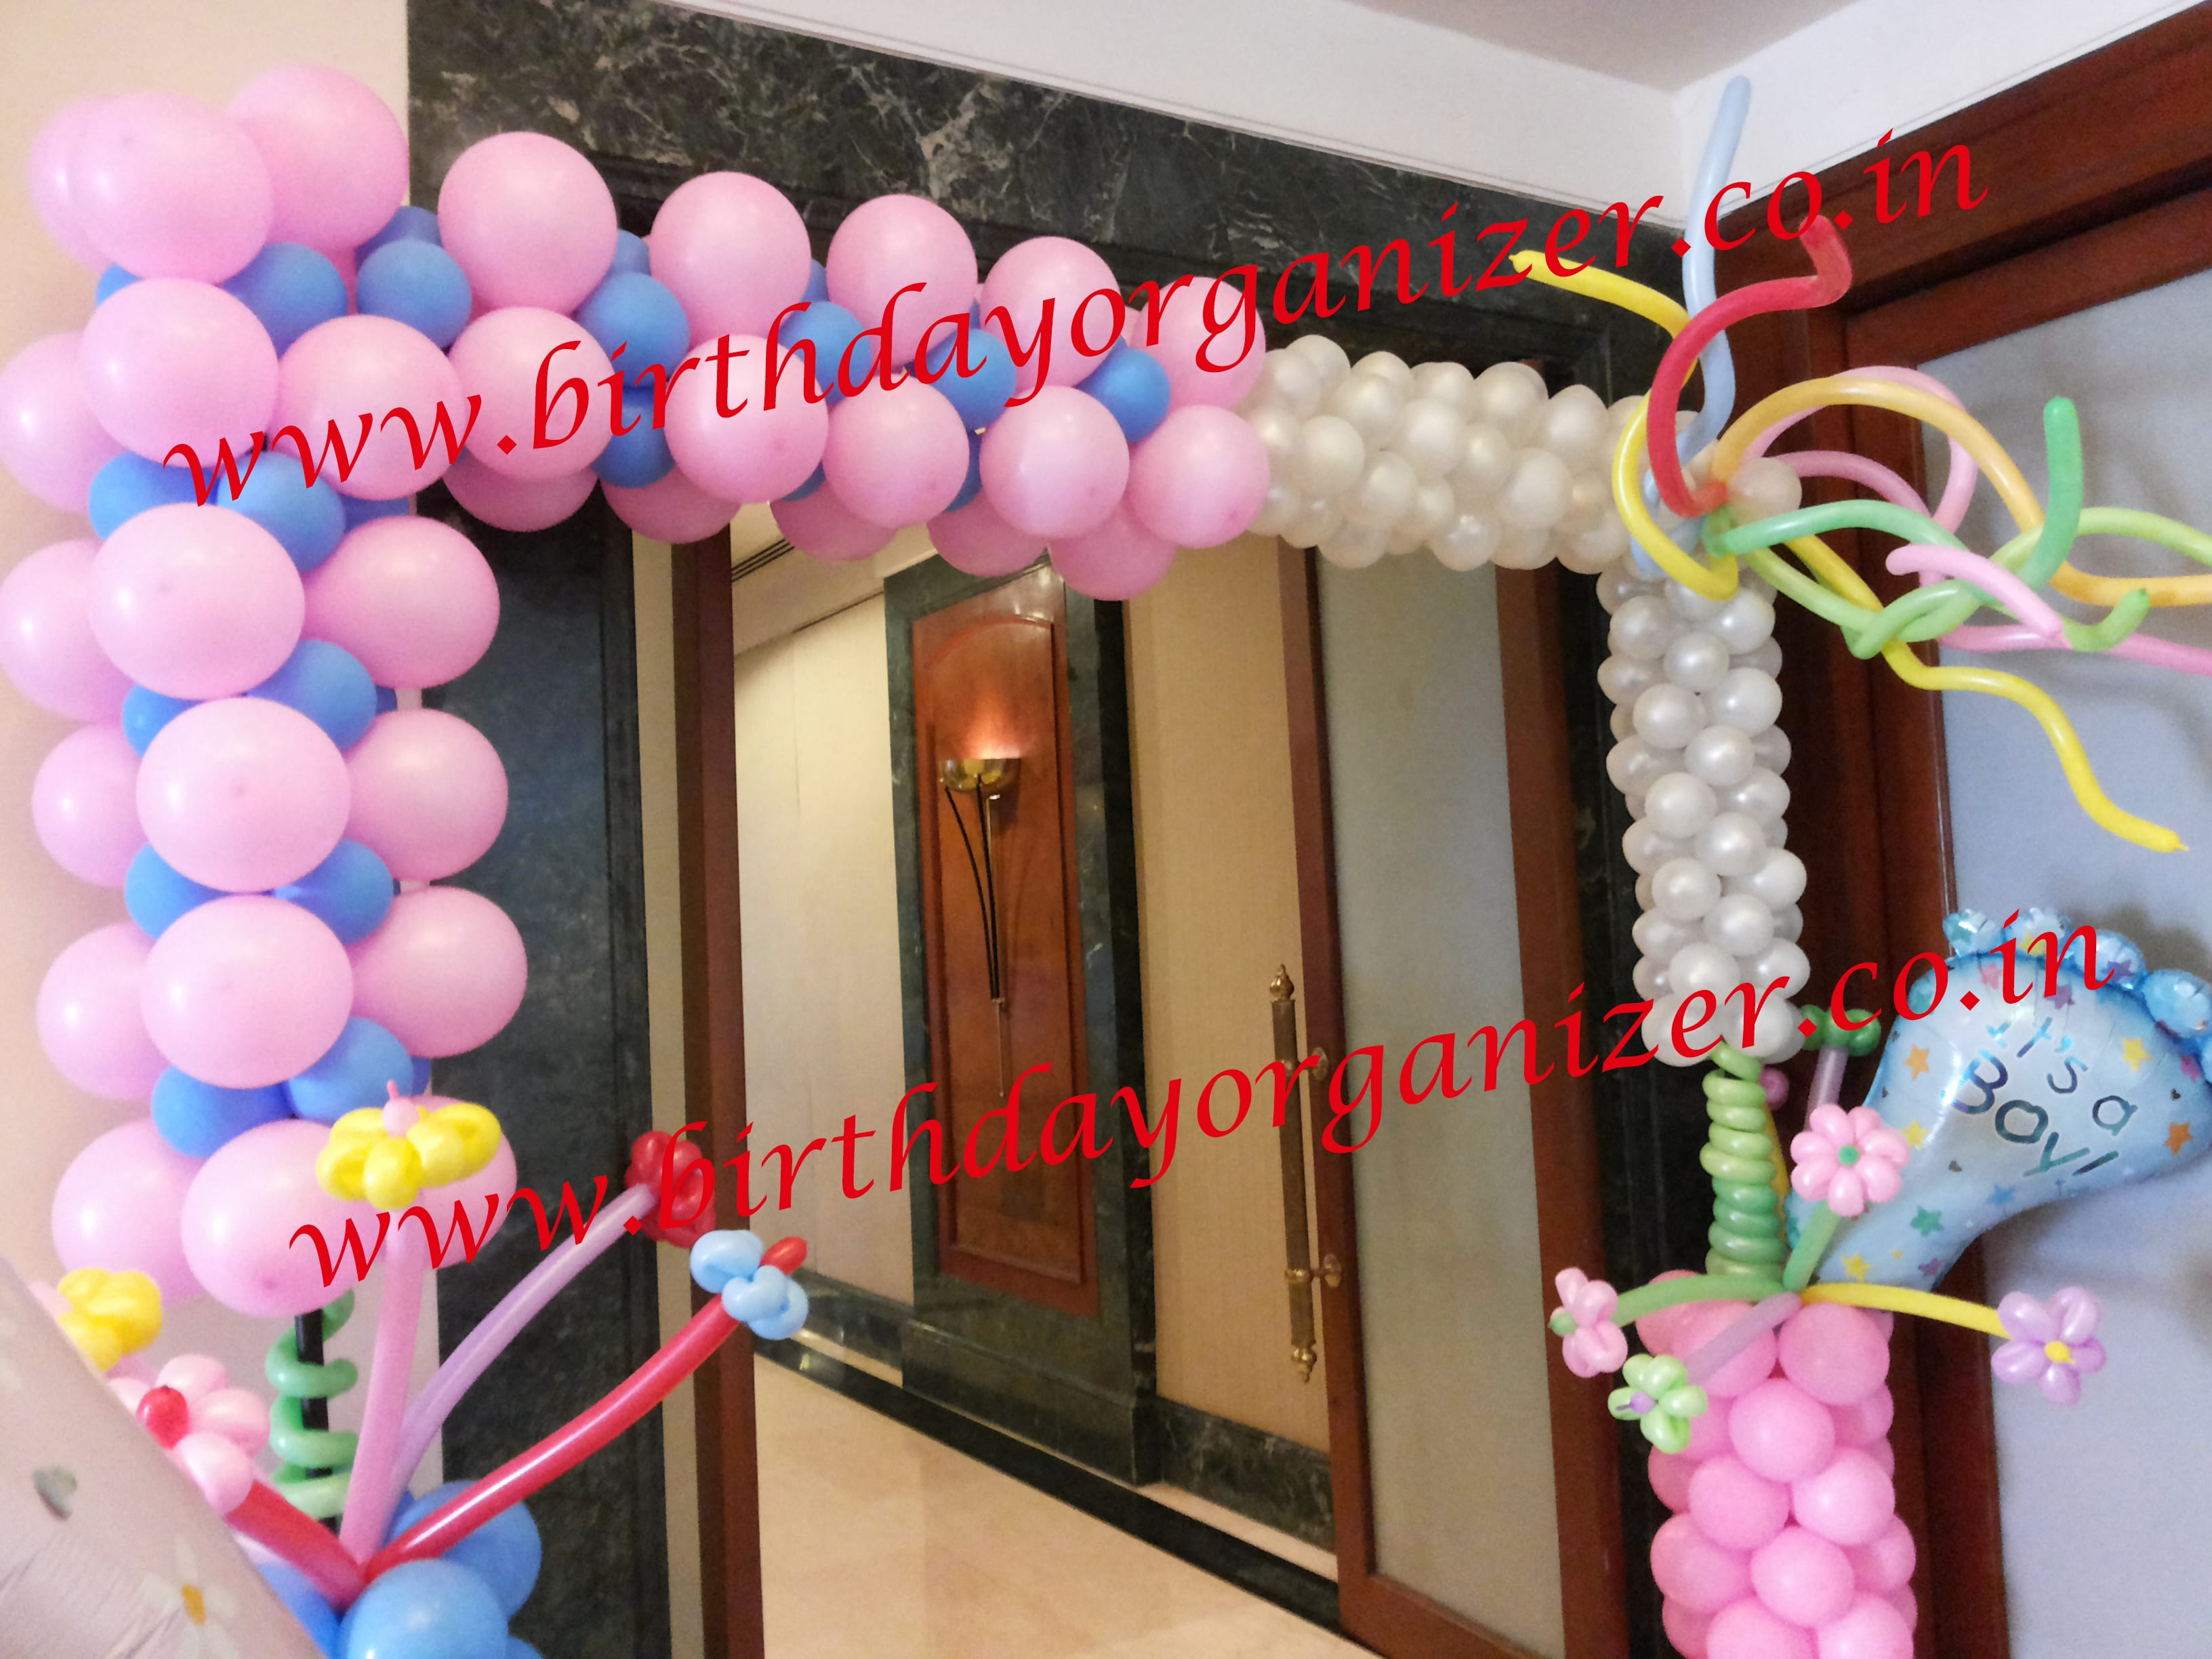 Baby shower entrance decoration in delhi , Baby shower entrance decoration in noida ncr, Baby shower entrance decoration ideas in delhi